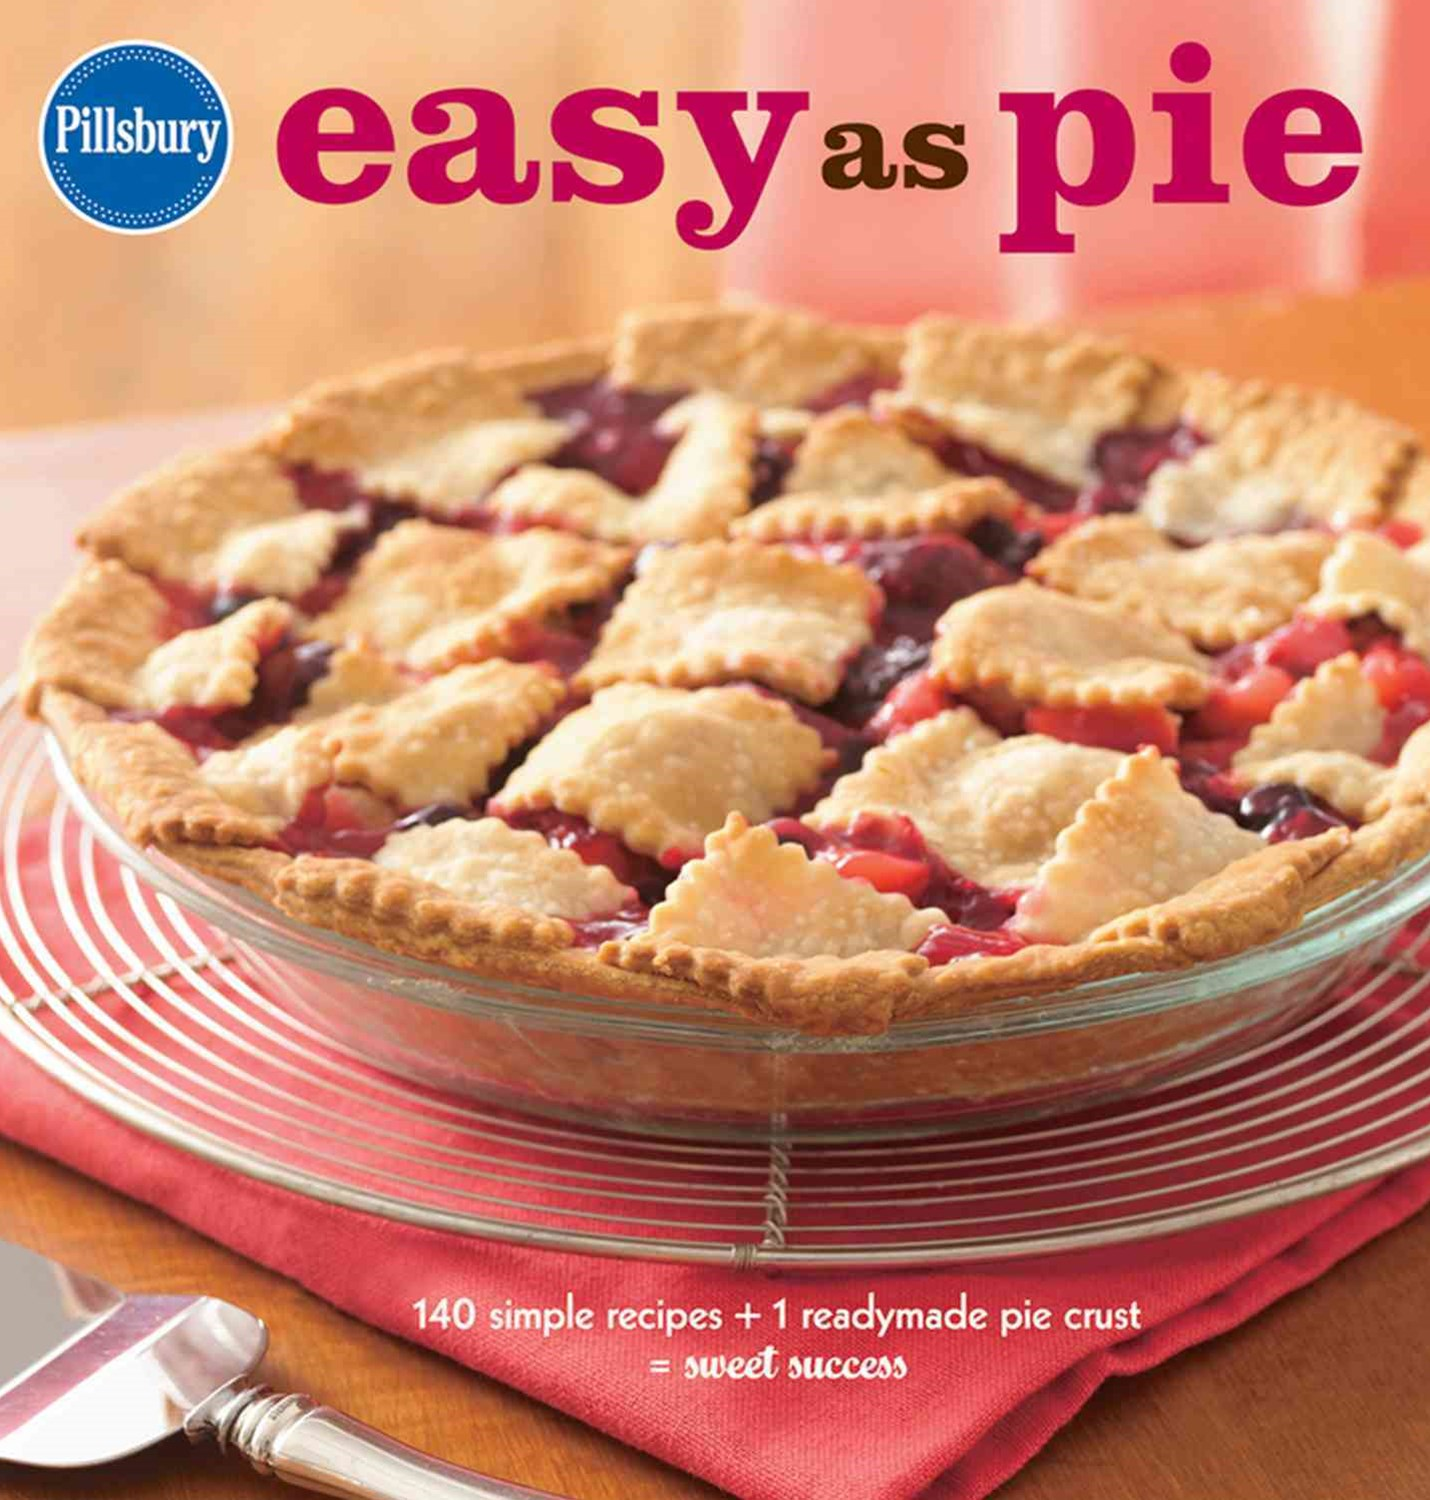 Pillsbury Easy as Pie